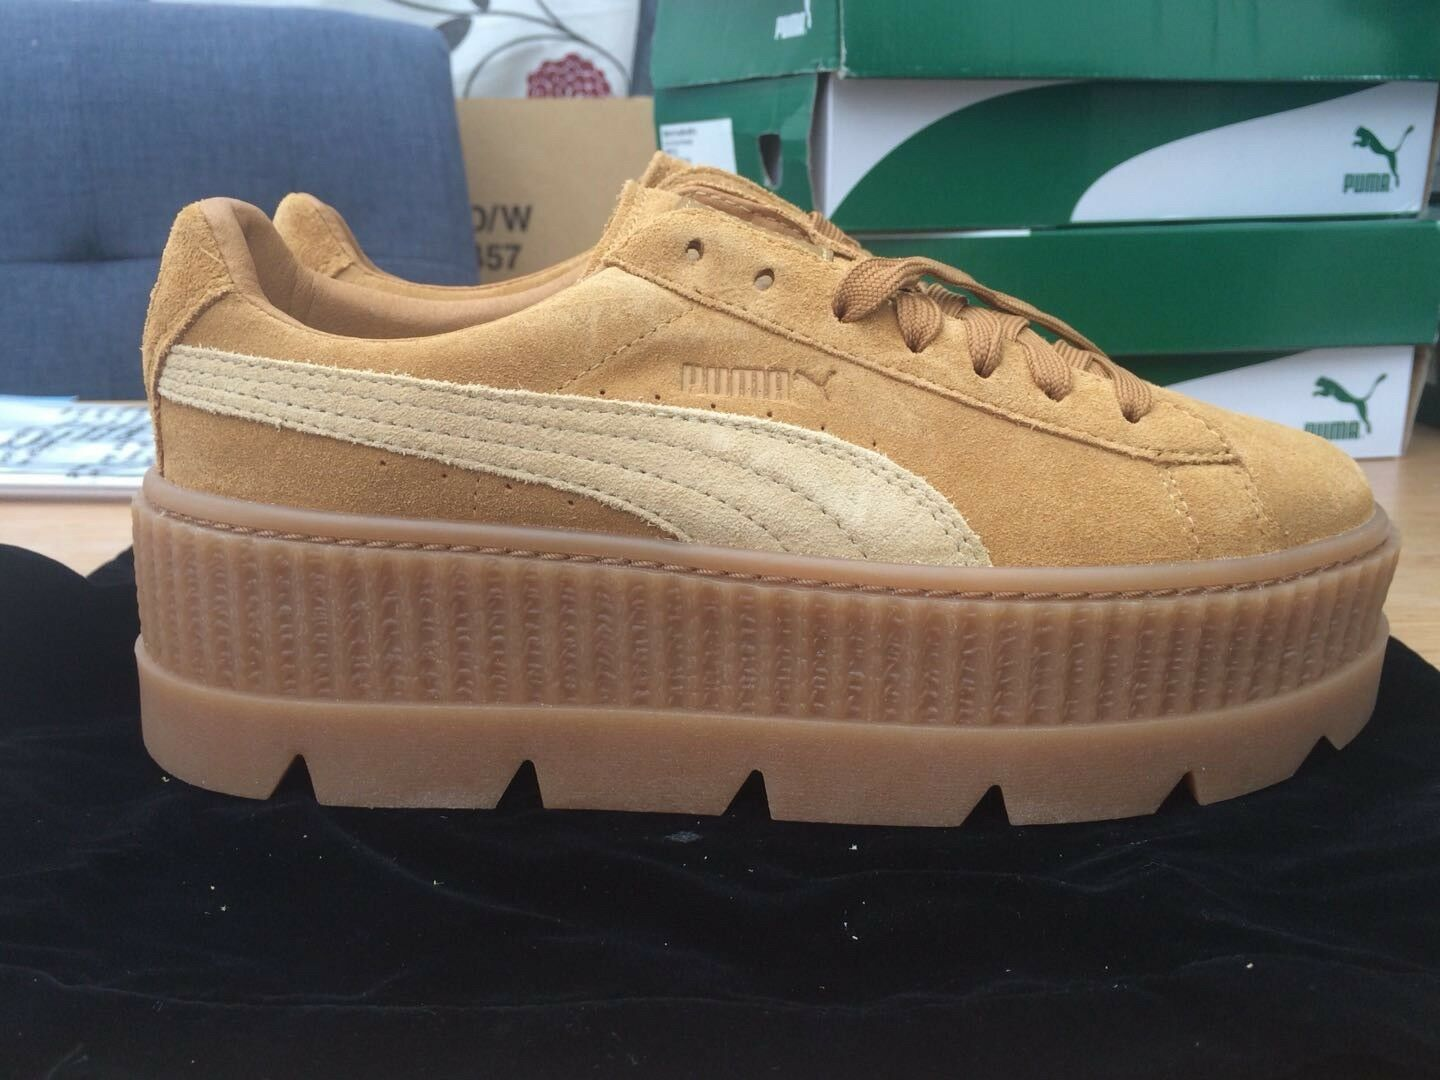 New  Authentic Puma Fenty Cleated Creeper Trainer golden Brown Suede Size 5 38